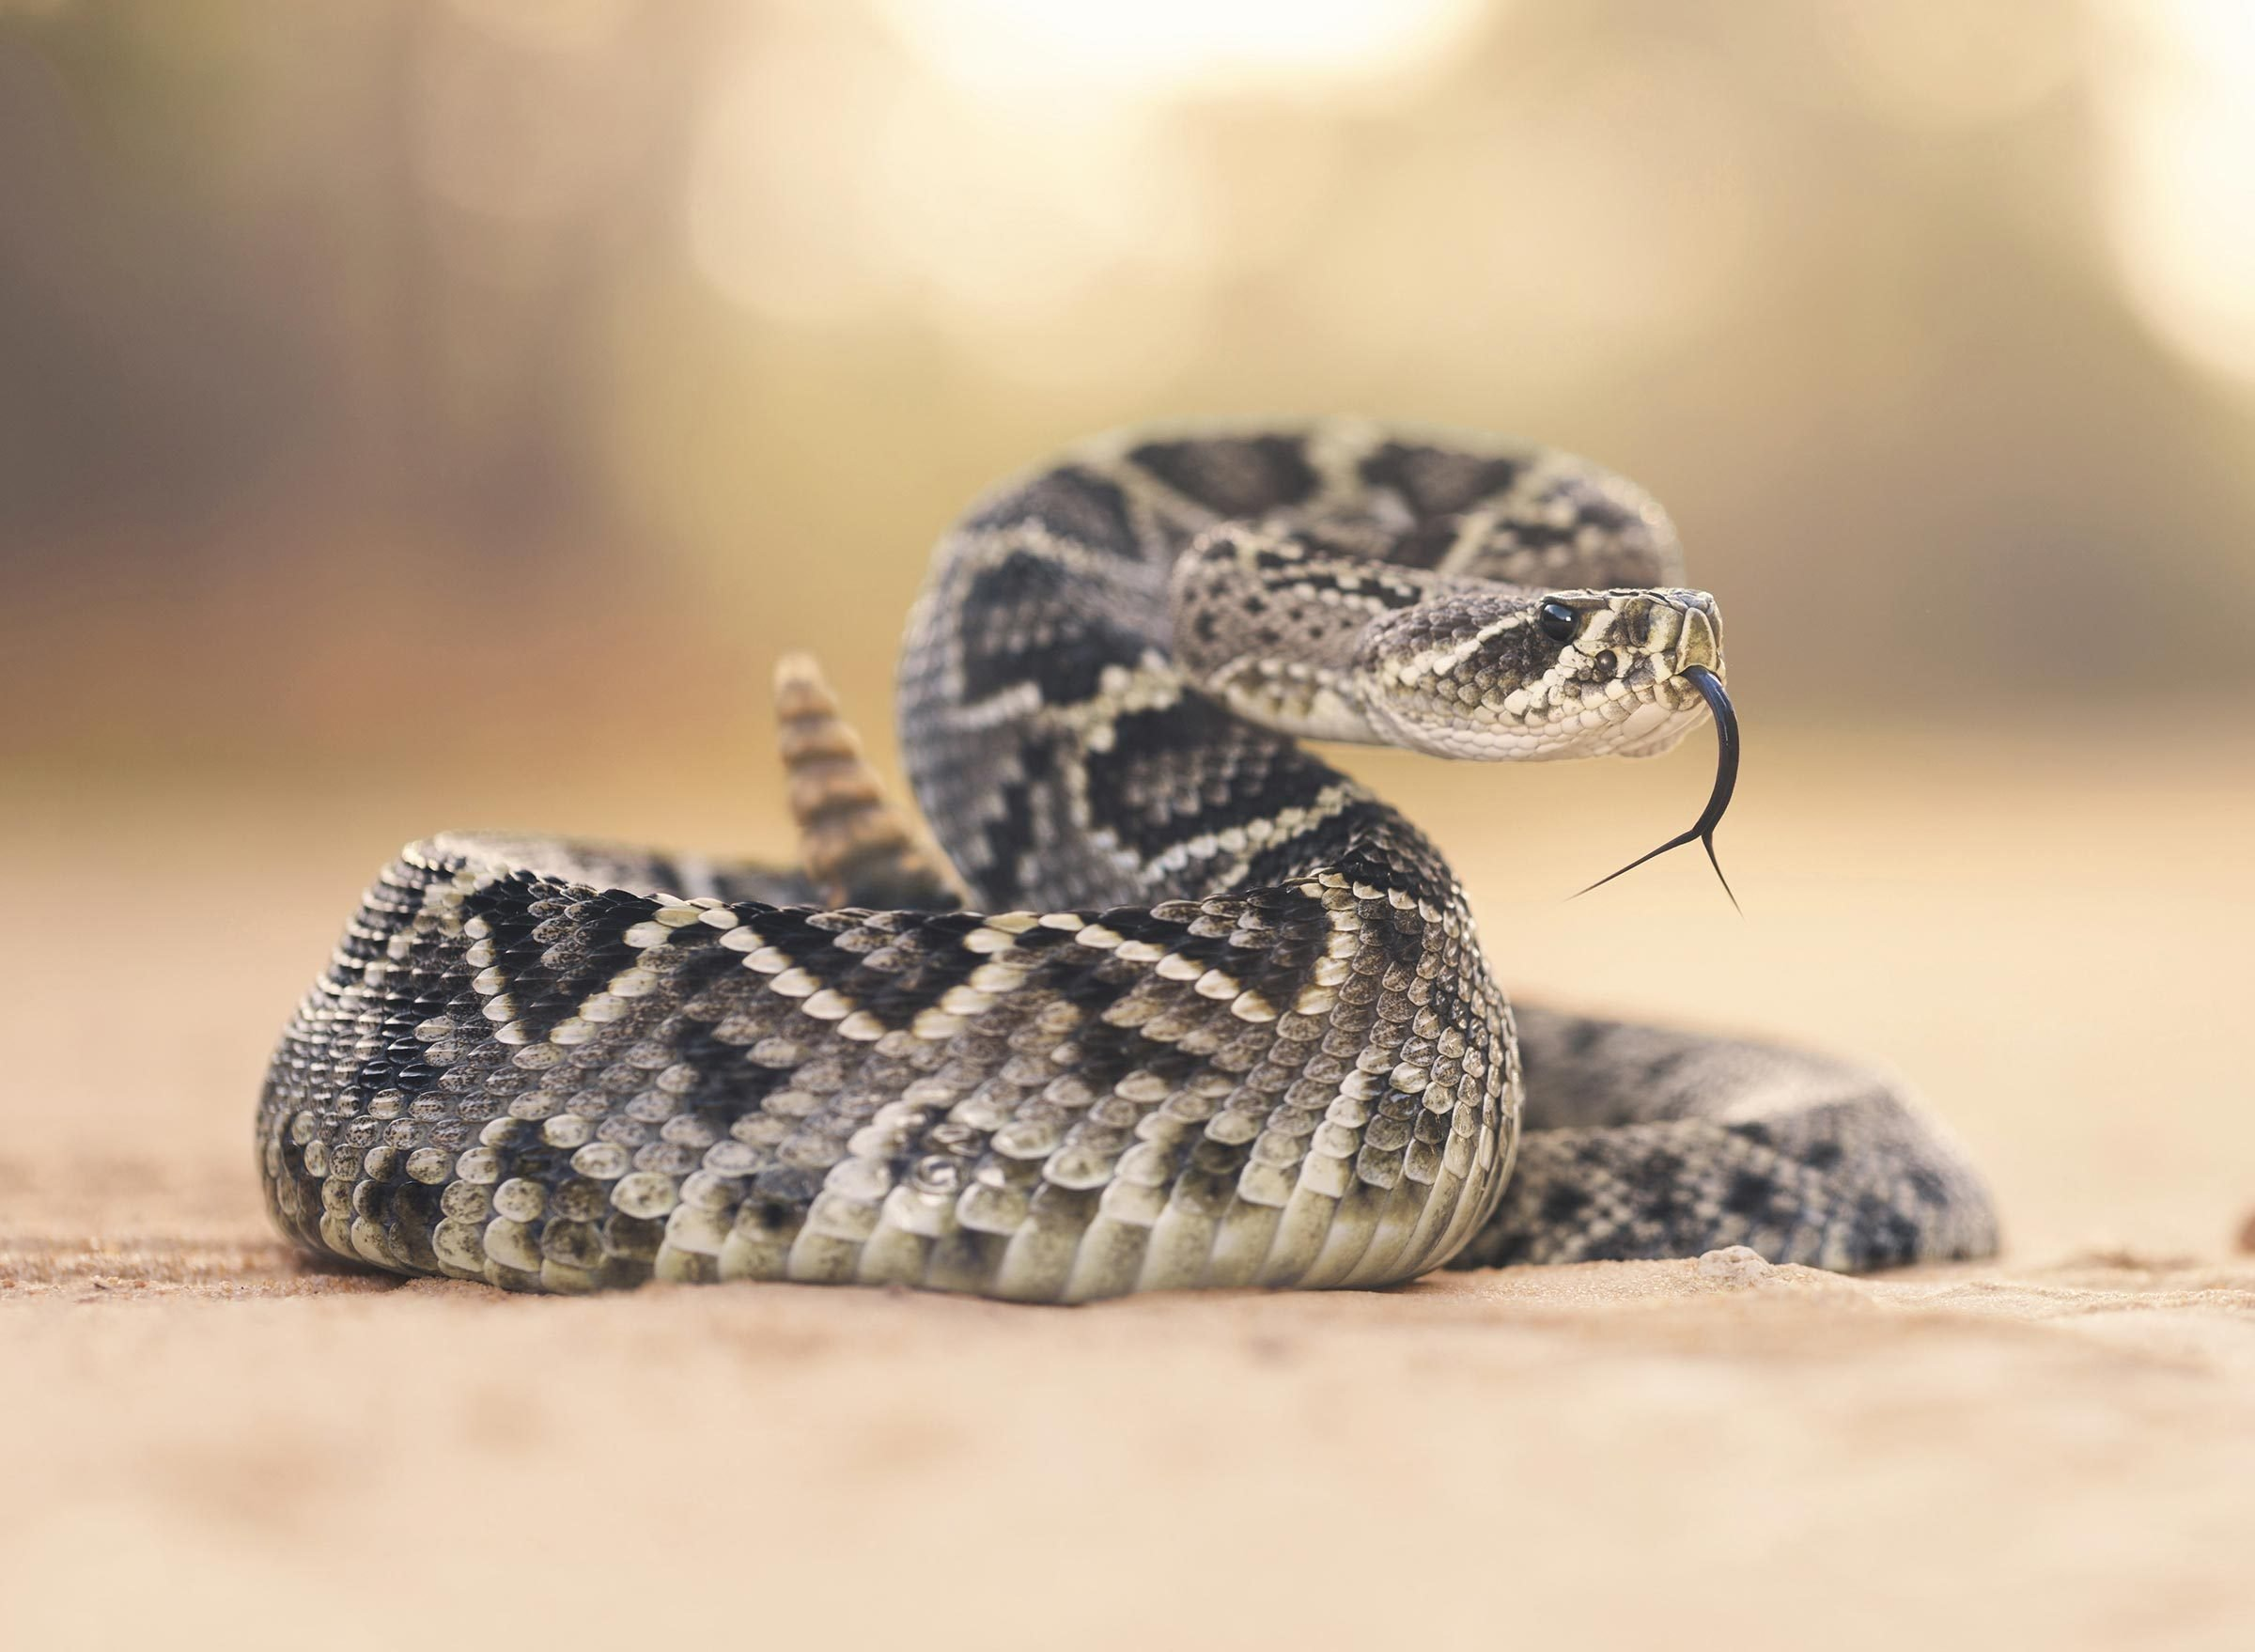 How I Survived a Rattlesnake Bite—with No Way of Getting to a